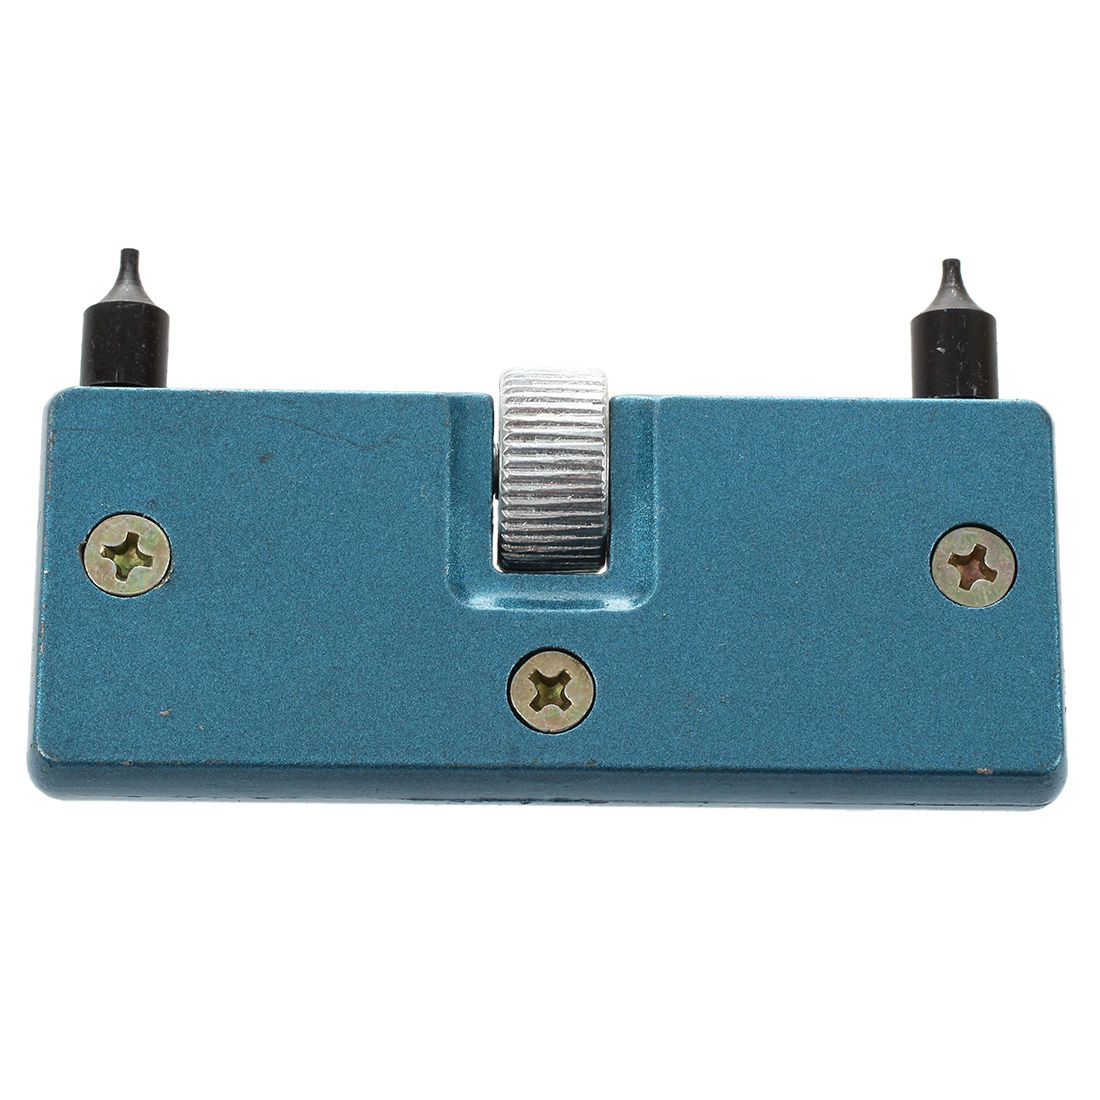 Practical Watch case opener watch tools watch tools watch accessories bolted watchcase